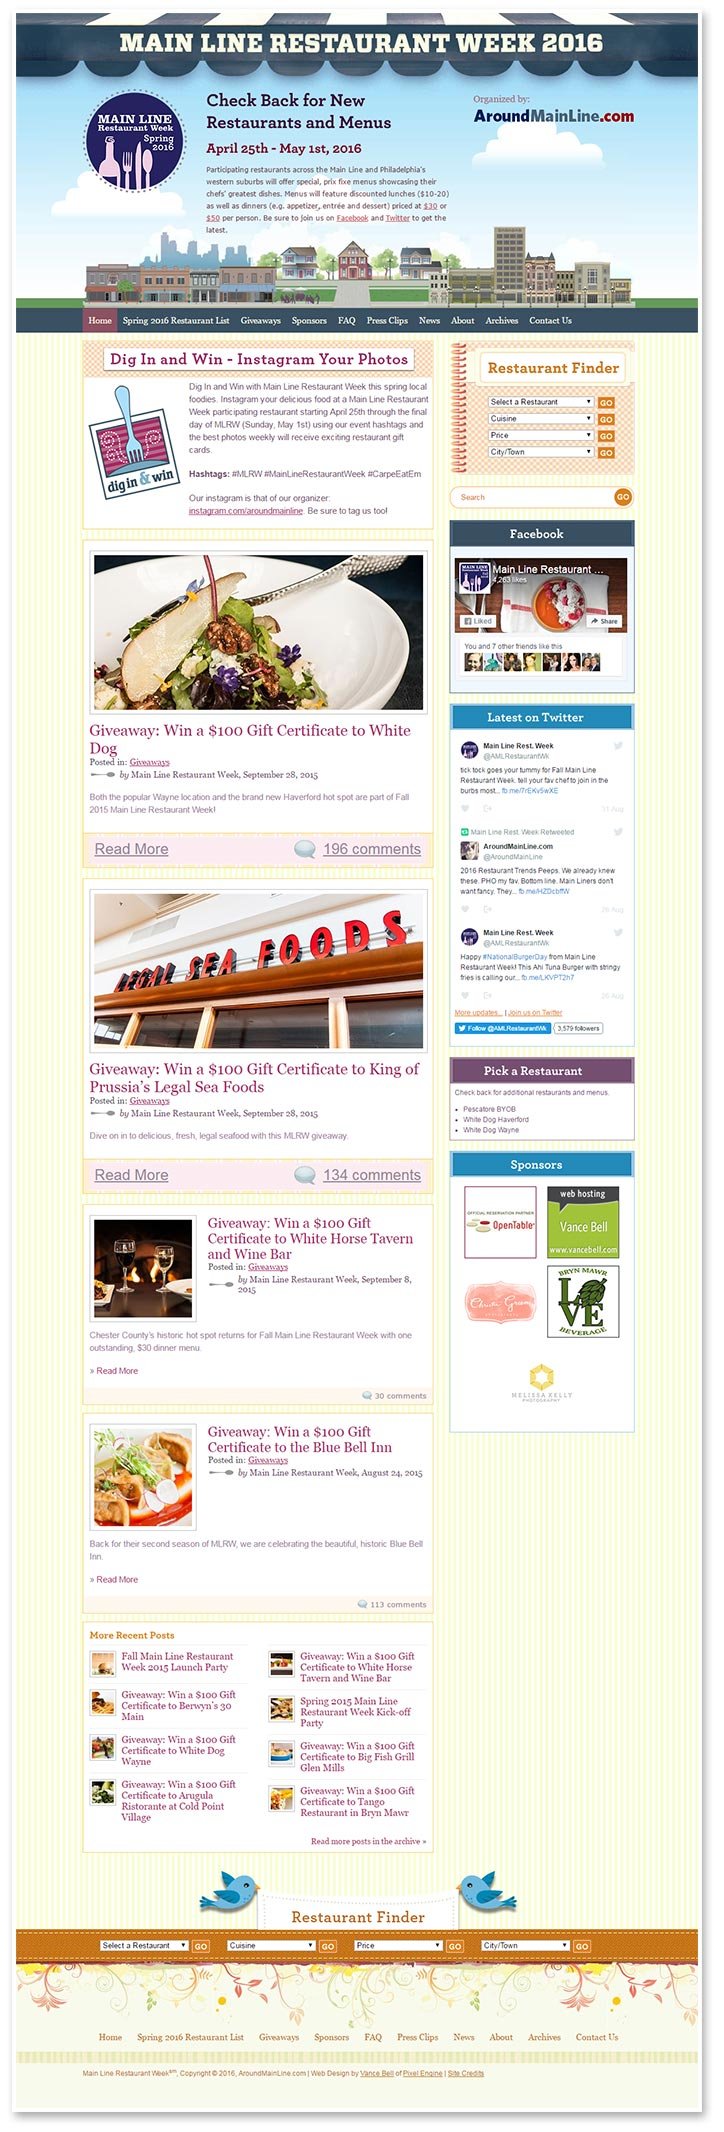 Main Line Restaurant Week - Web Design